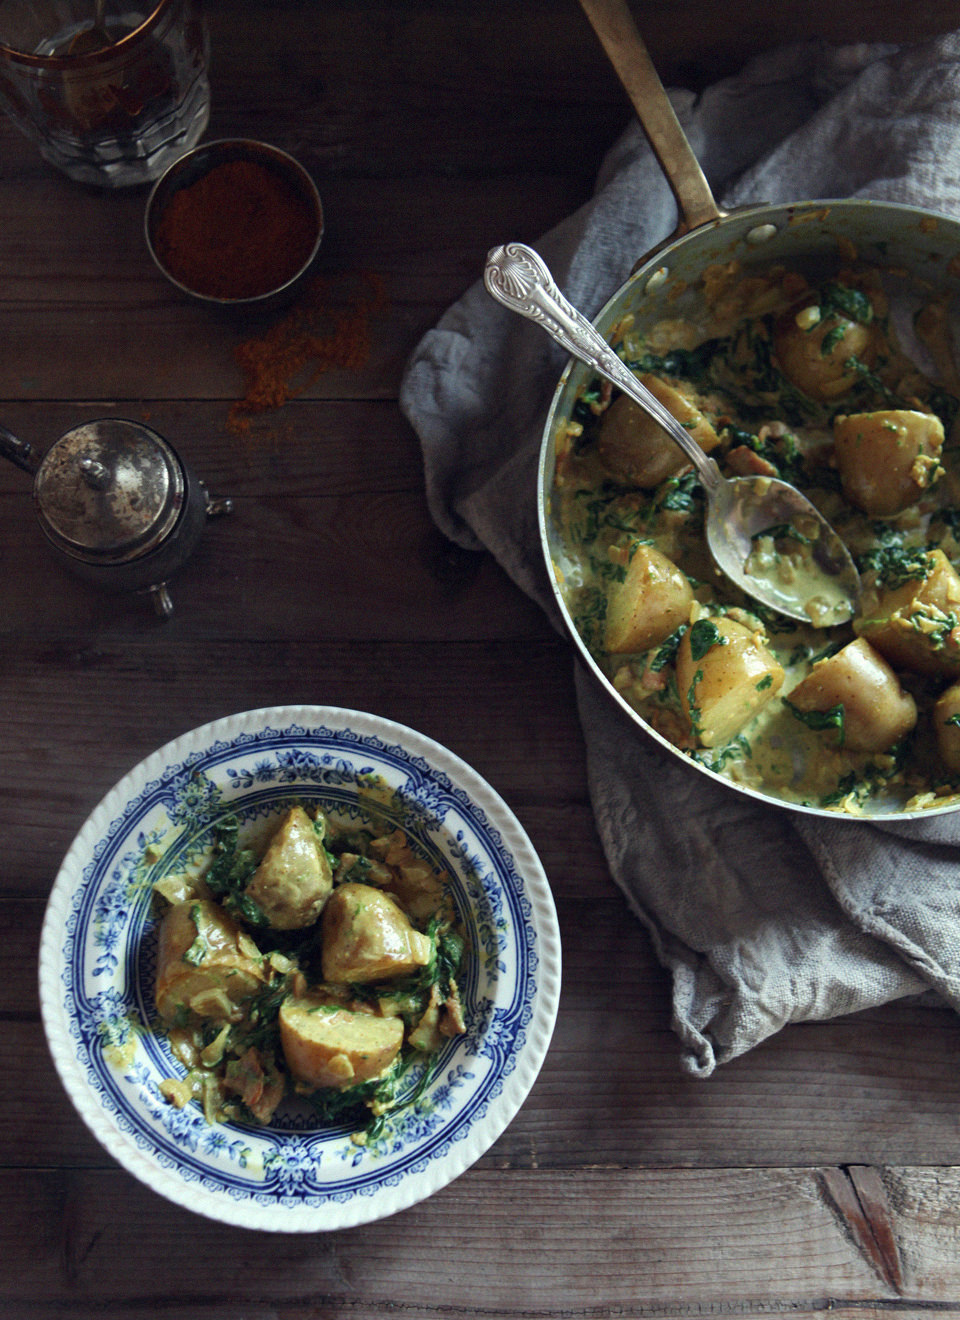 Potato-&-Spinach-with-Curry-Cream-Sauce-2